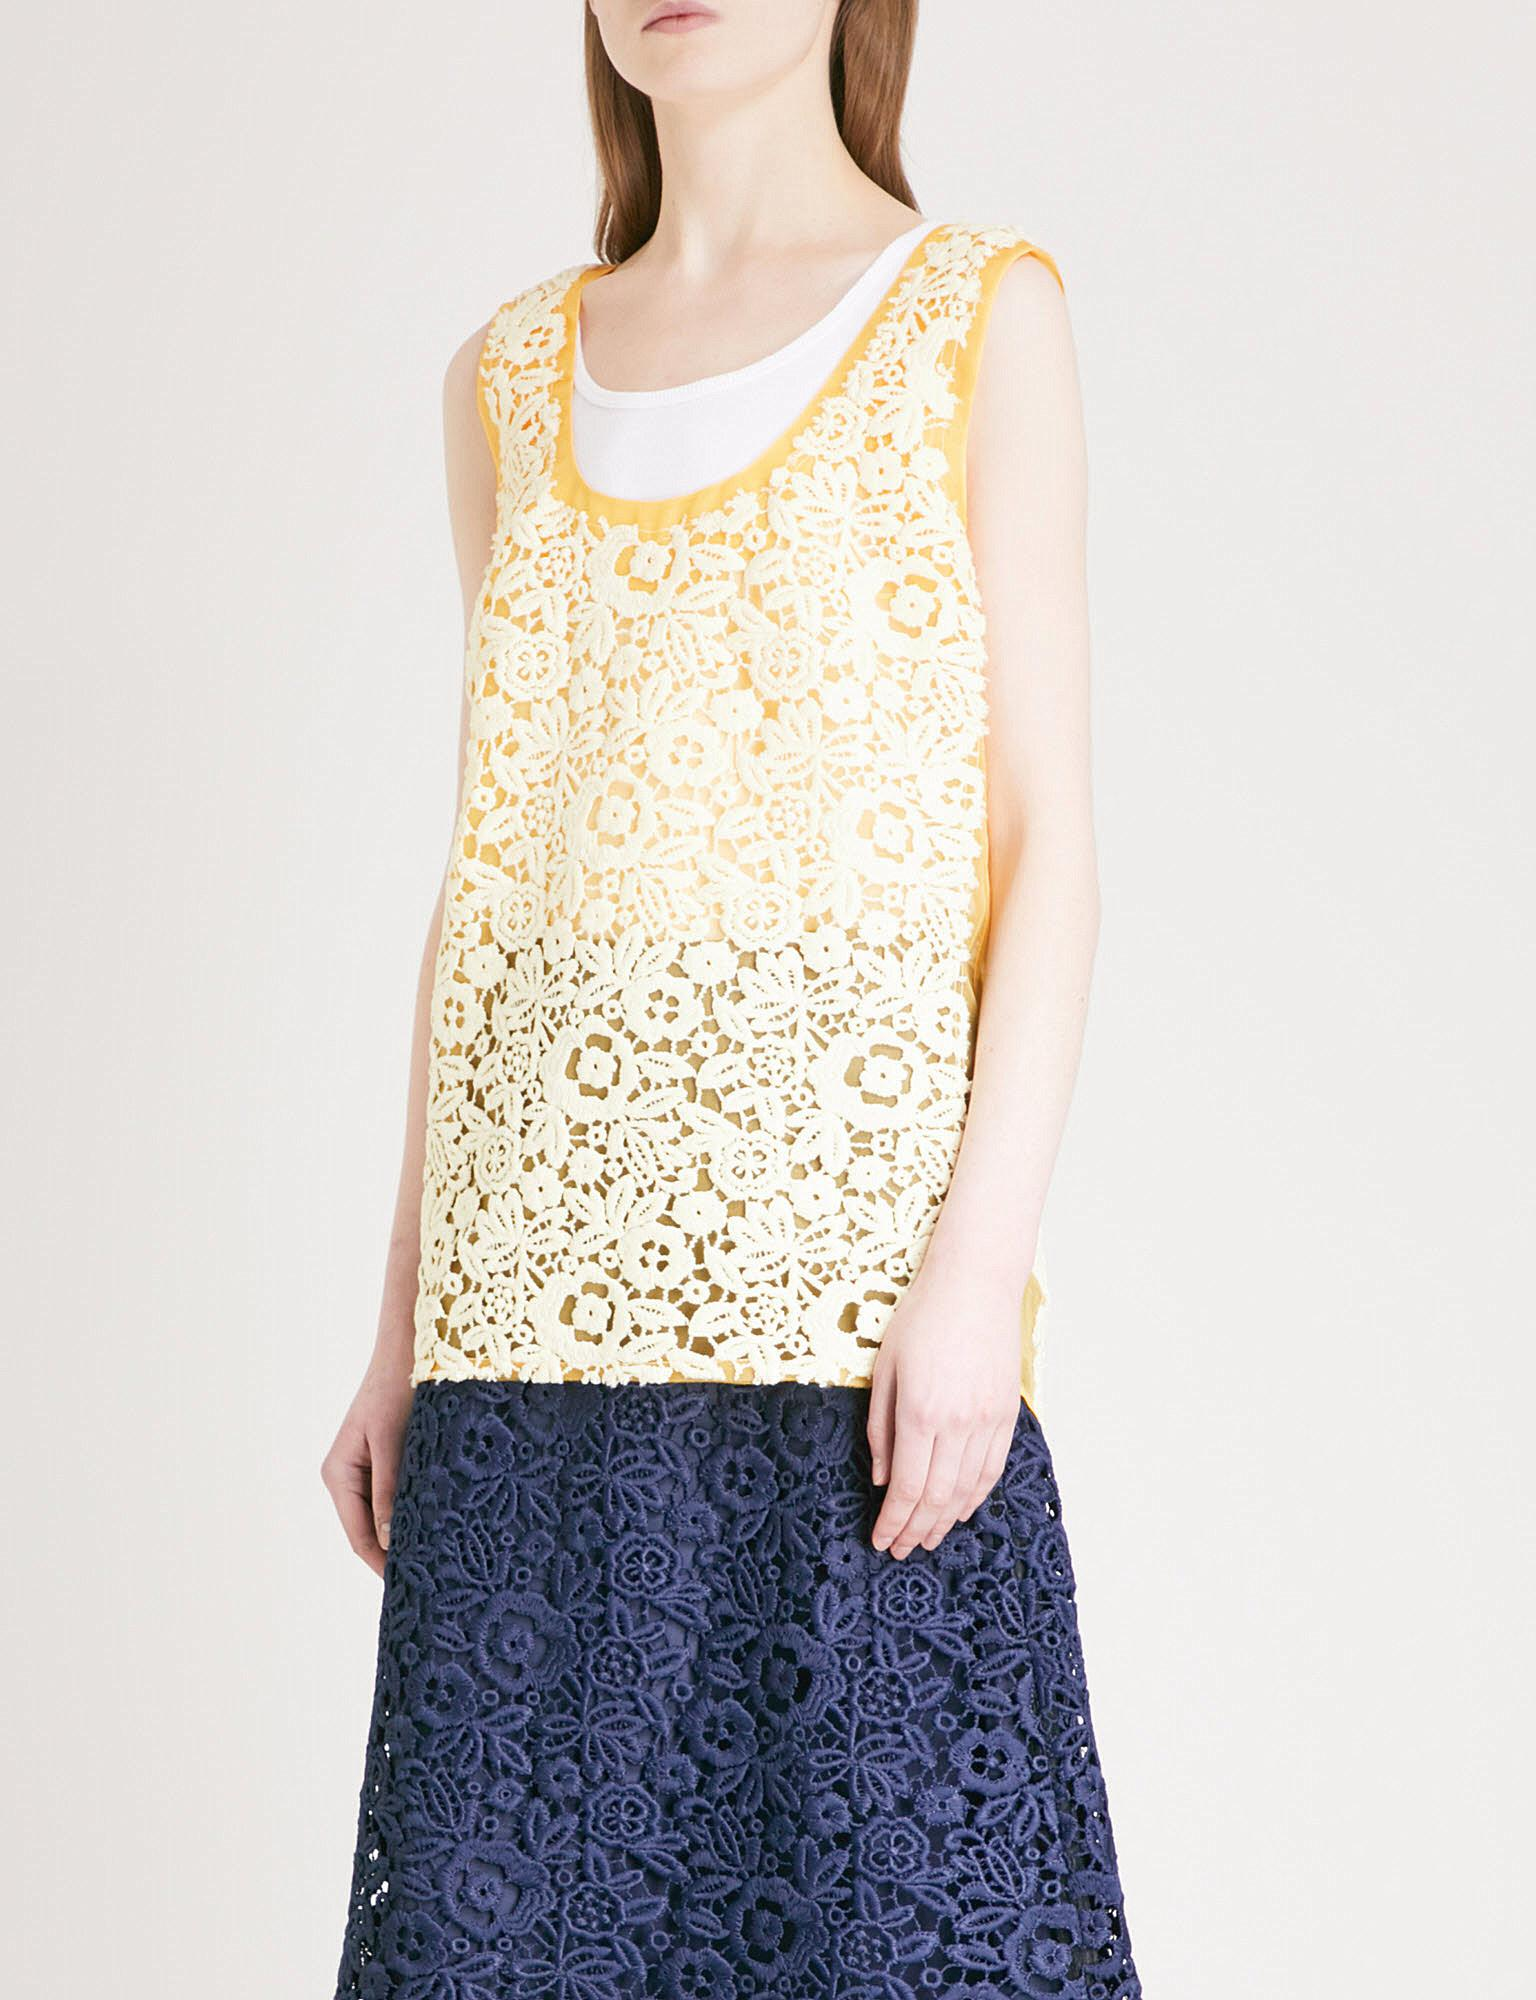 Embroidered silk top Miu Miu Outlet Sale XafMKrFs